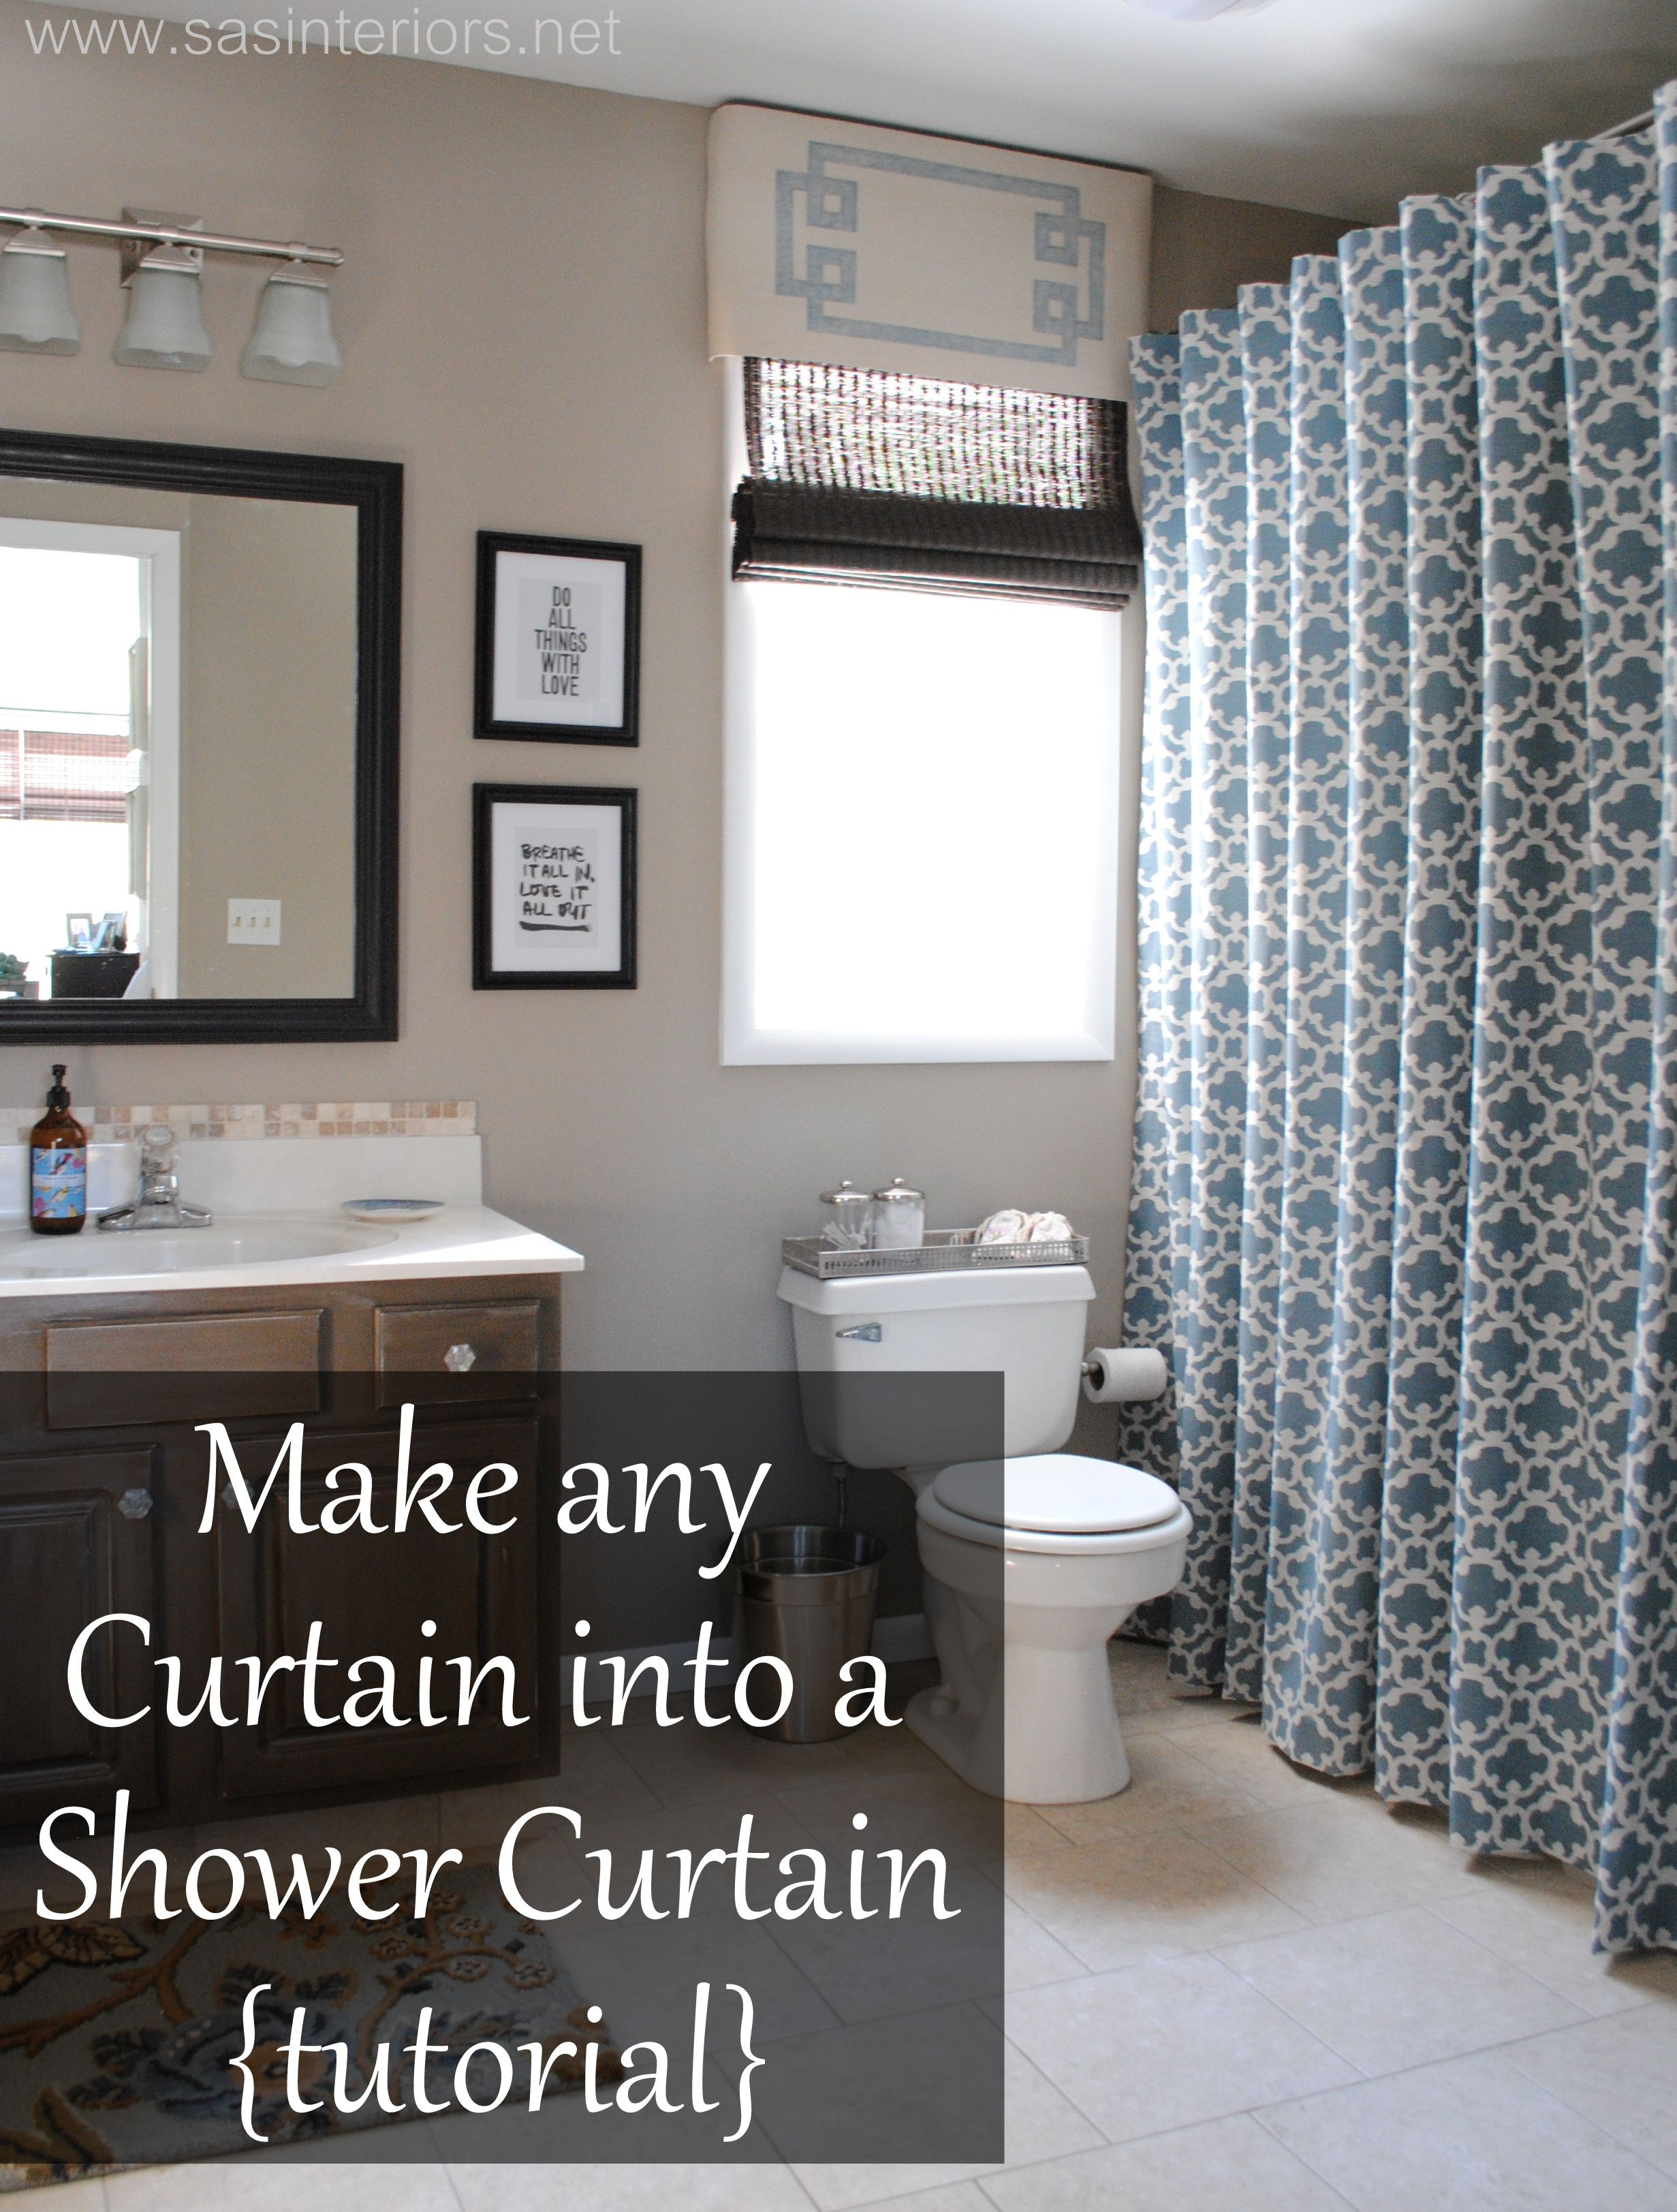 Bathroom window curtains with matching shower curtain - Love Little Window Dressing If You Can T Find A Shower Curtain To Match Your Bathroom Style Then Try Looking In The Regular Curtain Section